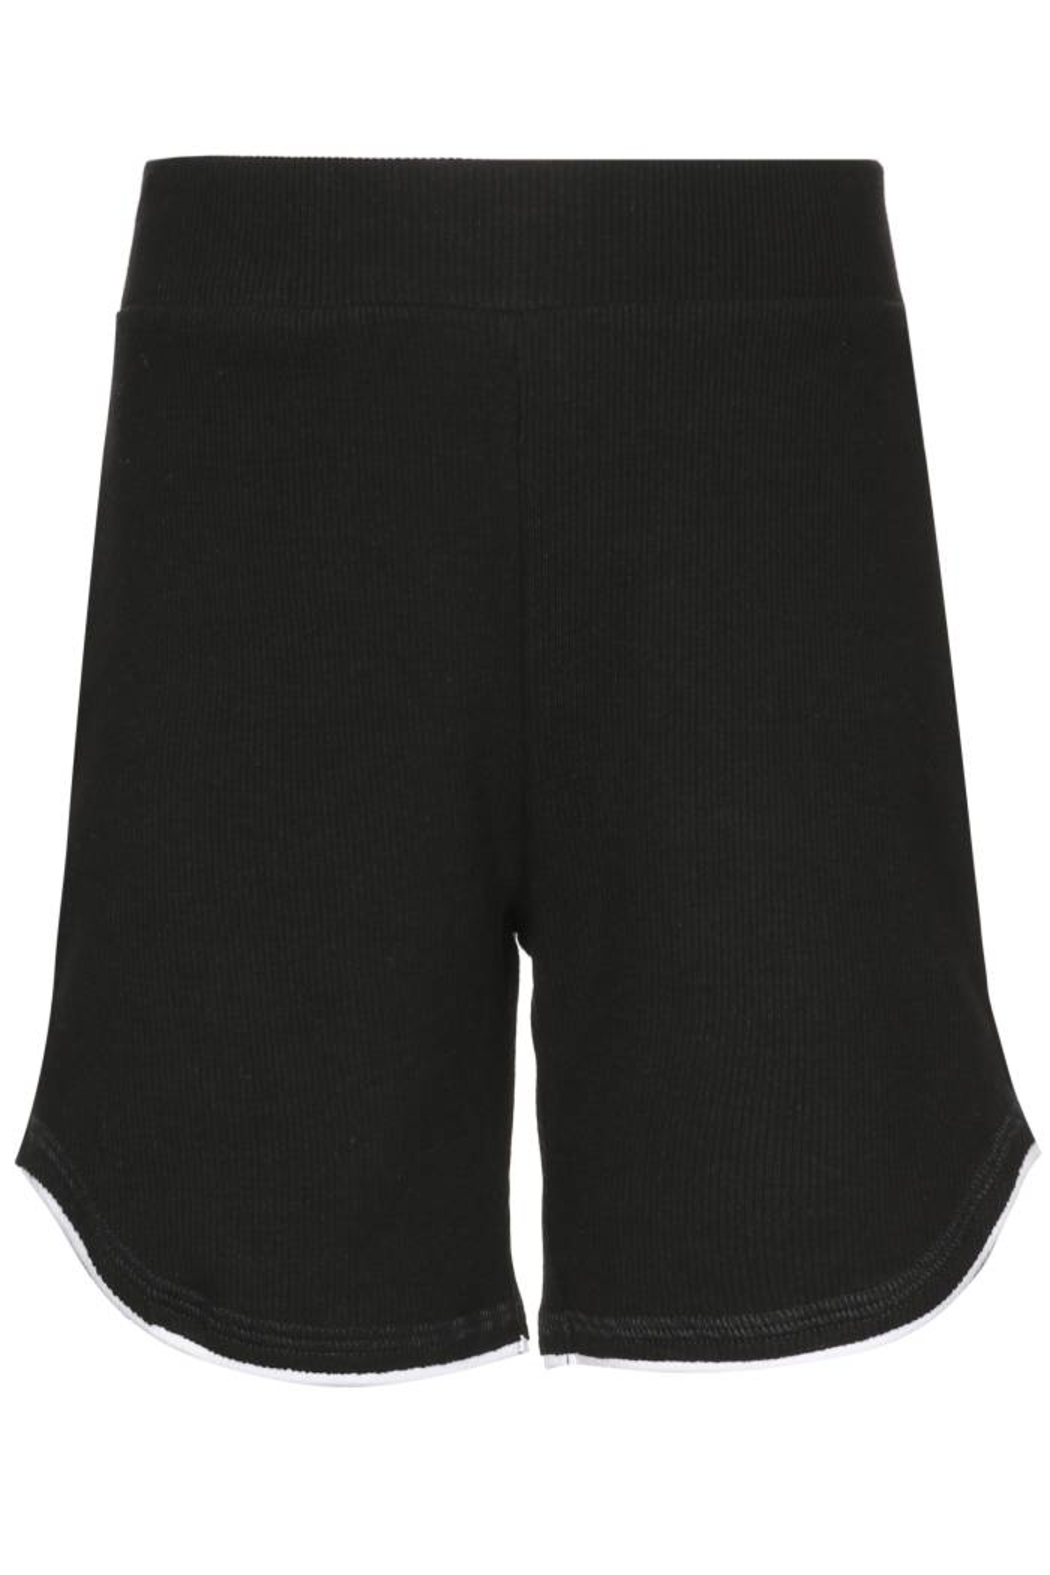 Little Parni  Clothing Shorts For Boys - Front Cropped Image